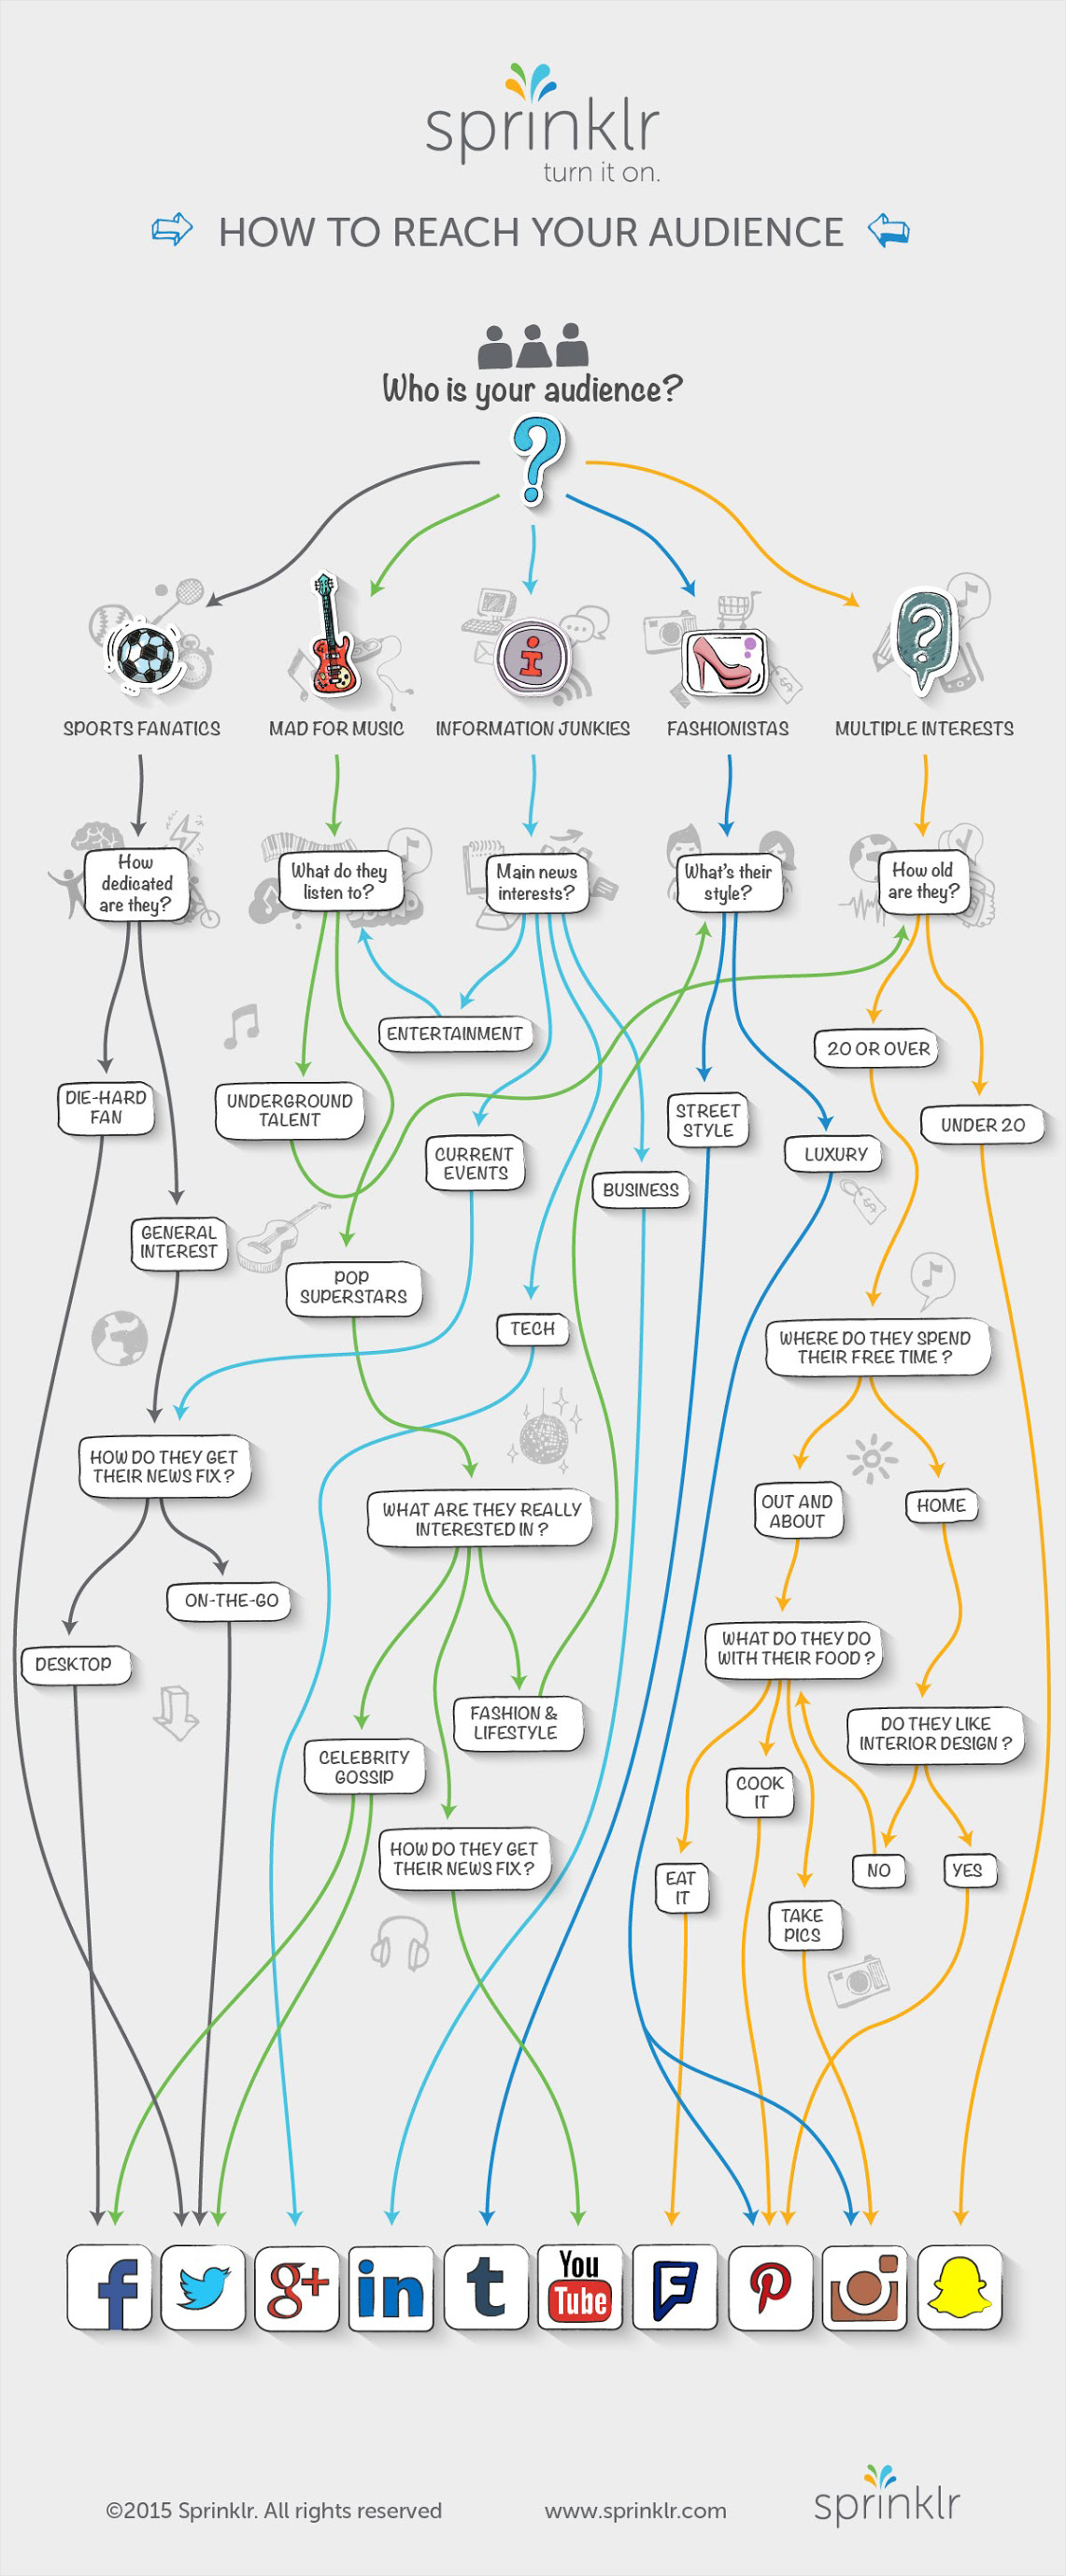 21 Creative Flowchart Examples for Making Important Life ... on